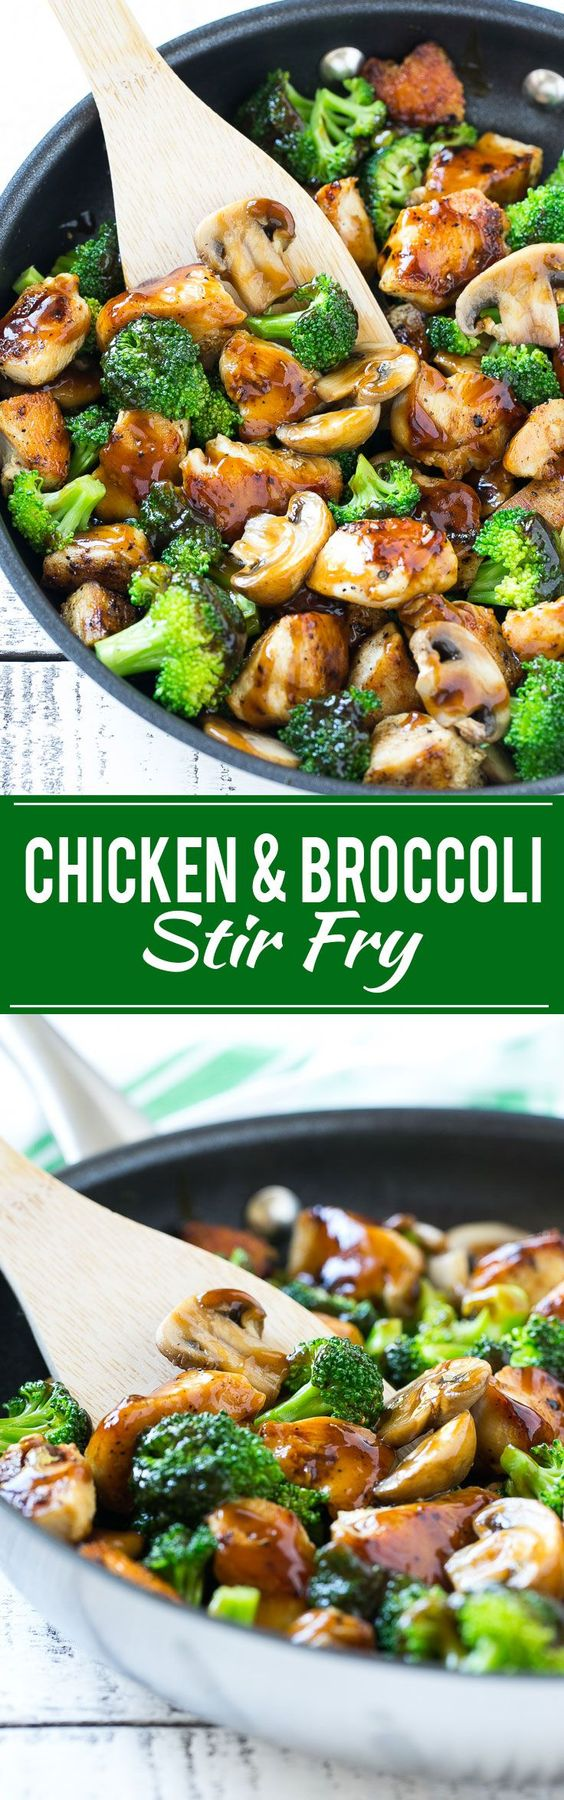 """This recipe for chicken and broccoli stir fry is a classic dish of chicken sauteed with fresh broccoli florets and coated in a savory sauce. You can have a healthy and easy dinner on the table in 30 minutes! ad <a href=""""/kitchenfairus/"""" title=""""Kitchen Fair"""">@Kitchen Fair</a>"""